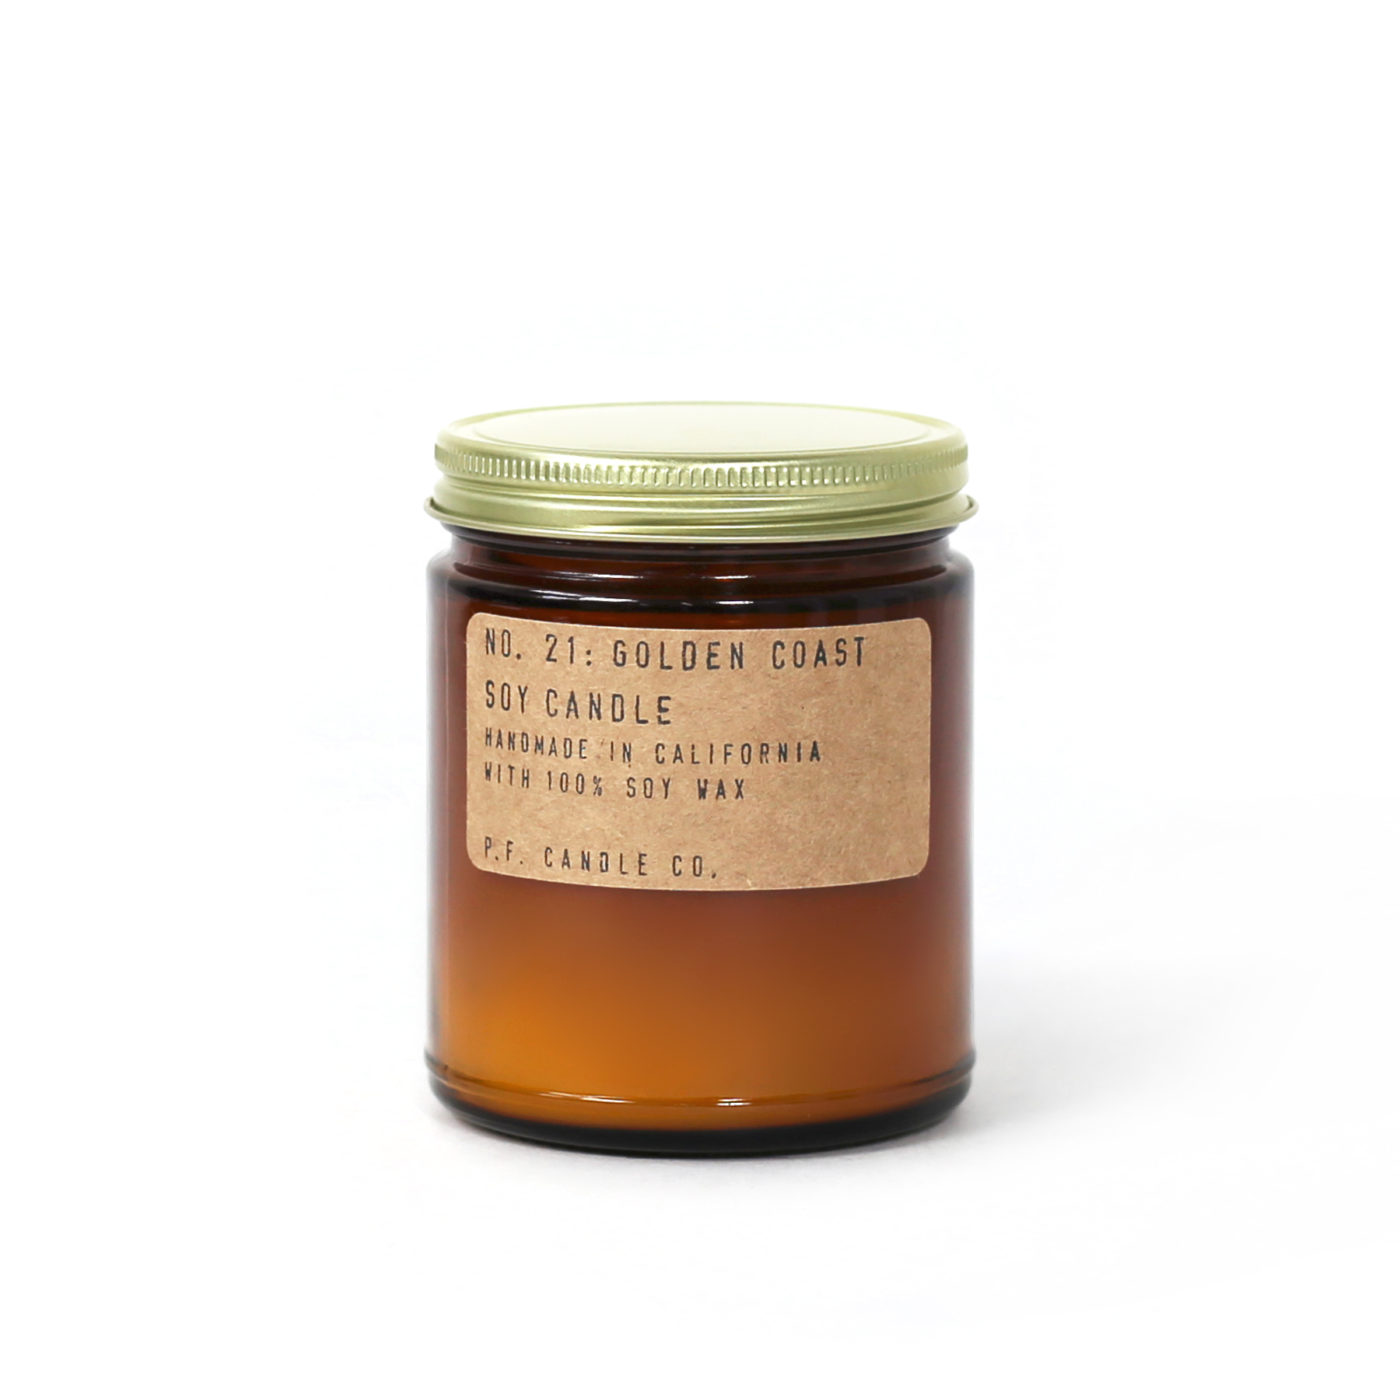 pf golden coast scented candle in jar